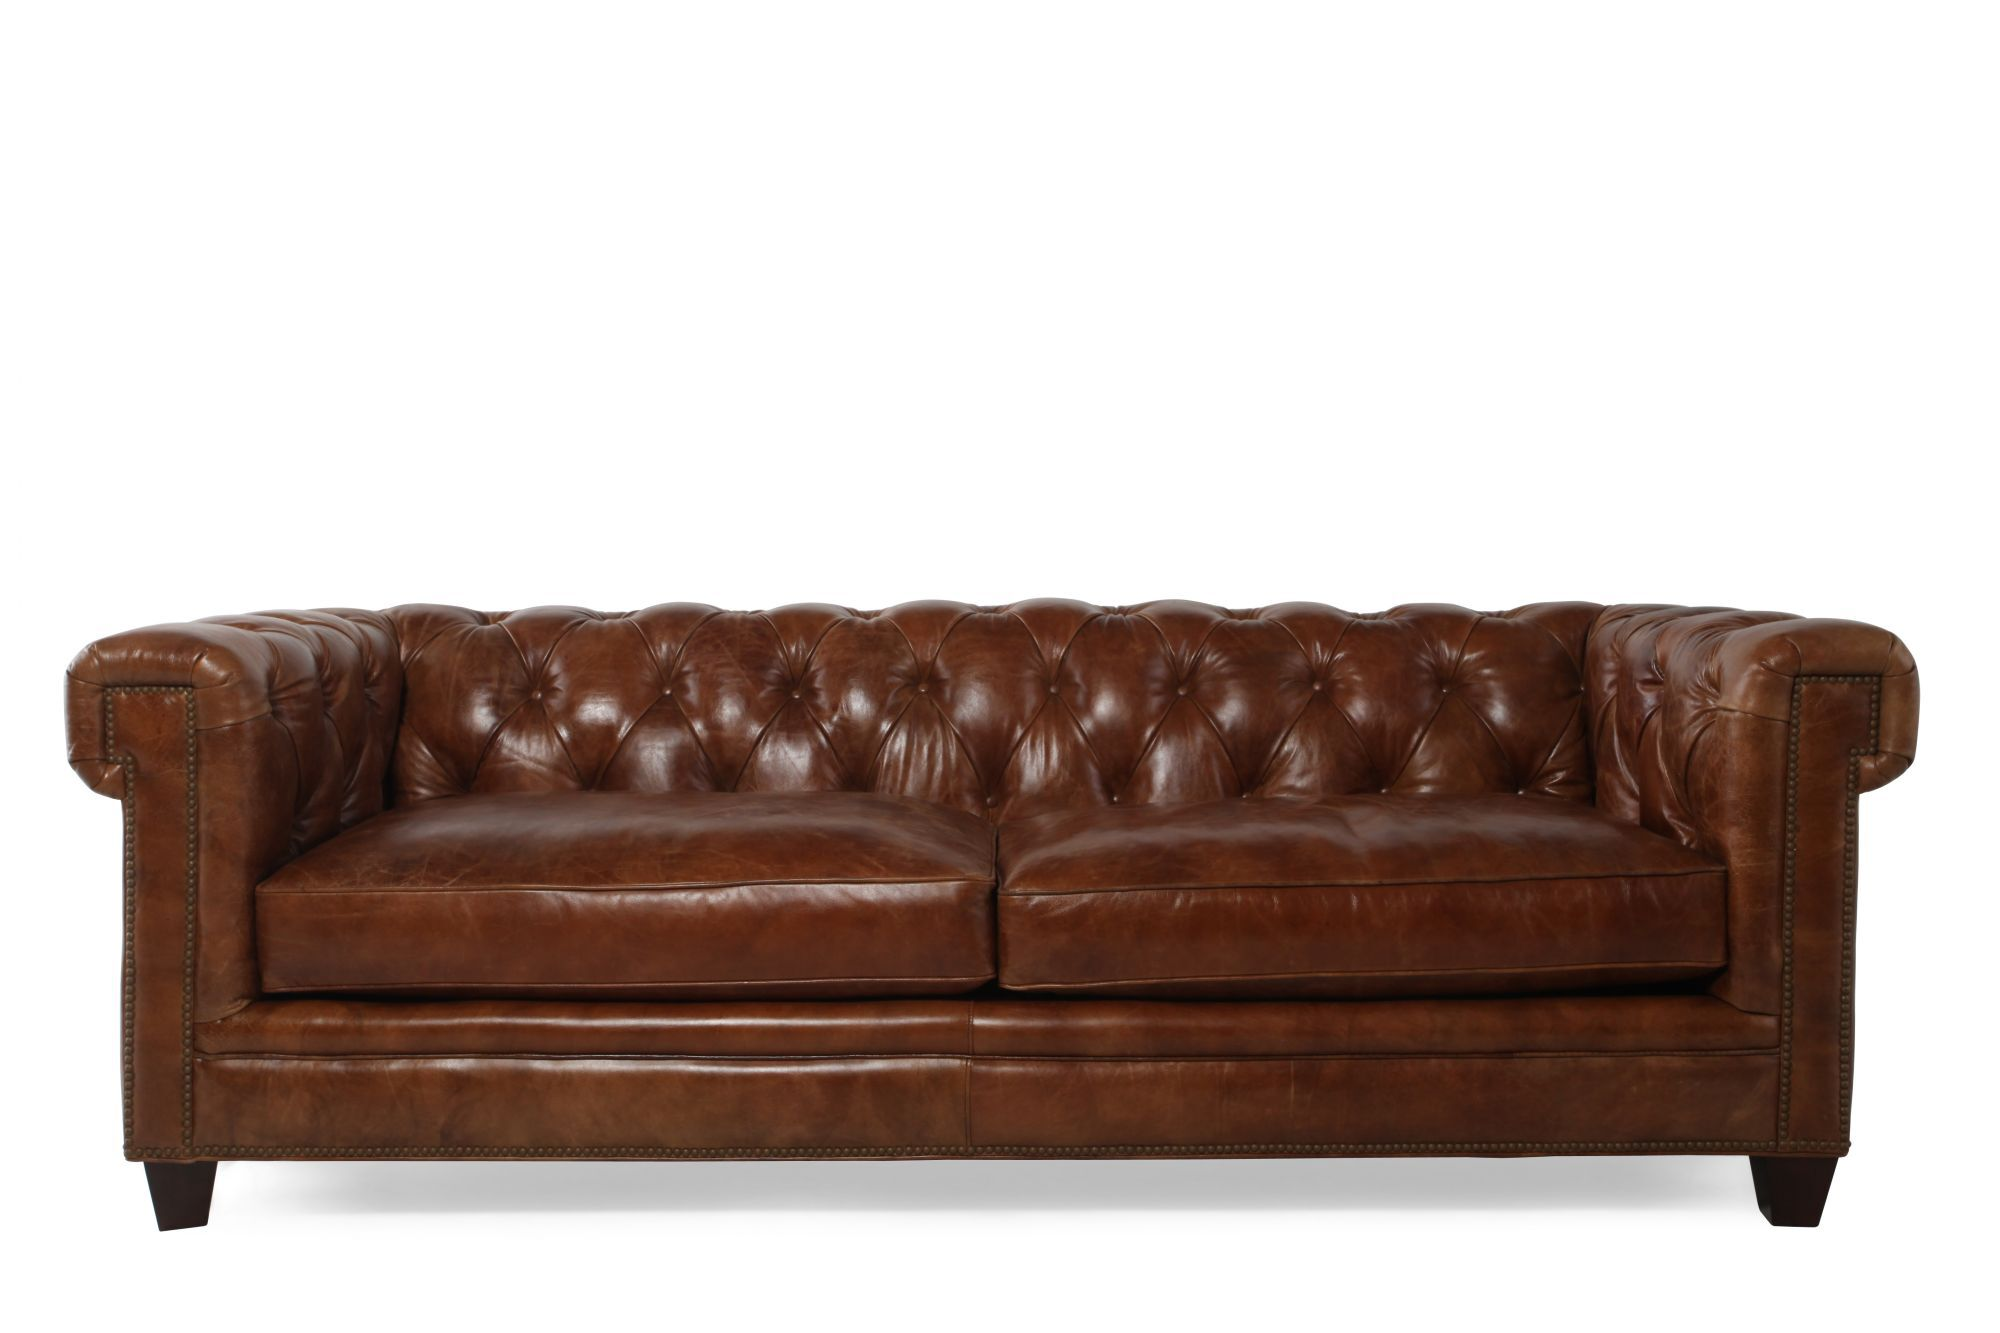 ButtonTufted Leather 90 Sofa in Saddle Brown Mathis Brothers